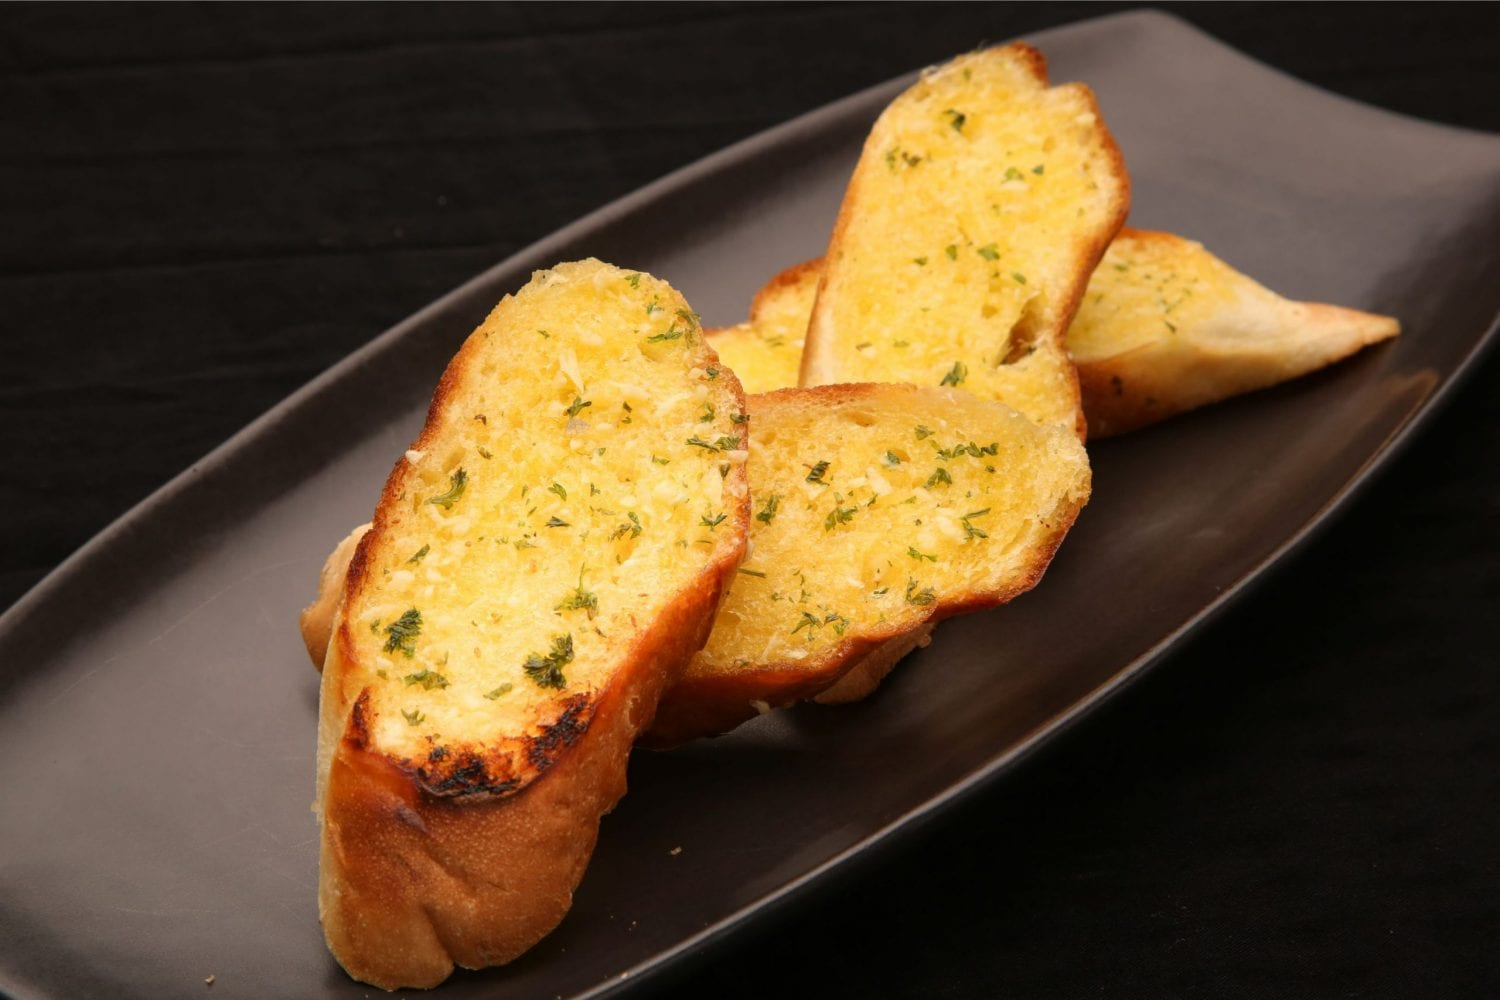 slices of weed garlic bread on a black abstract plate